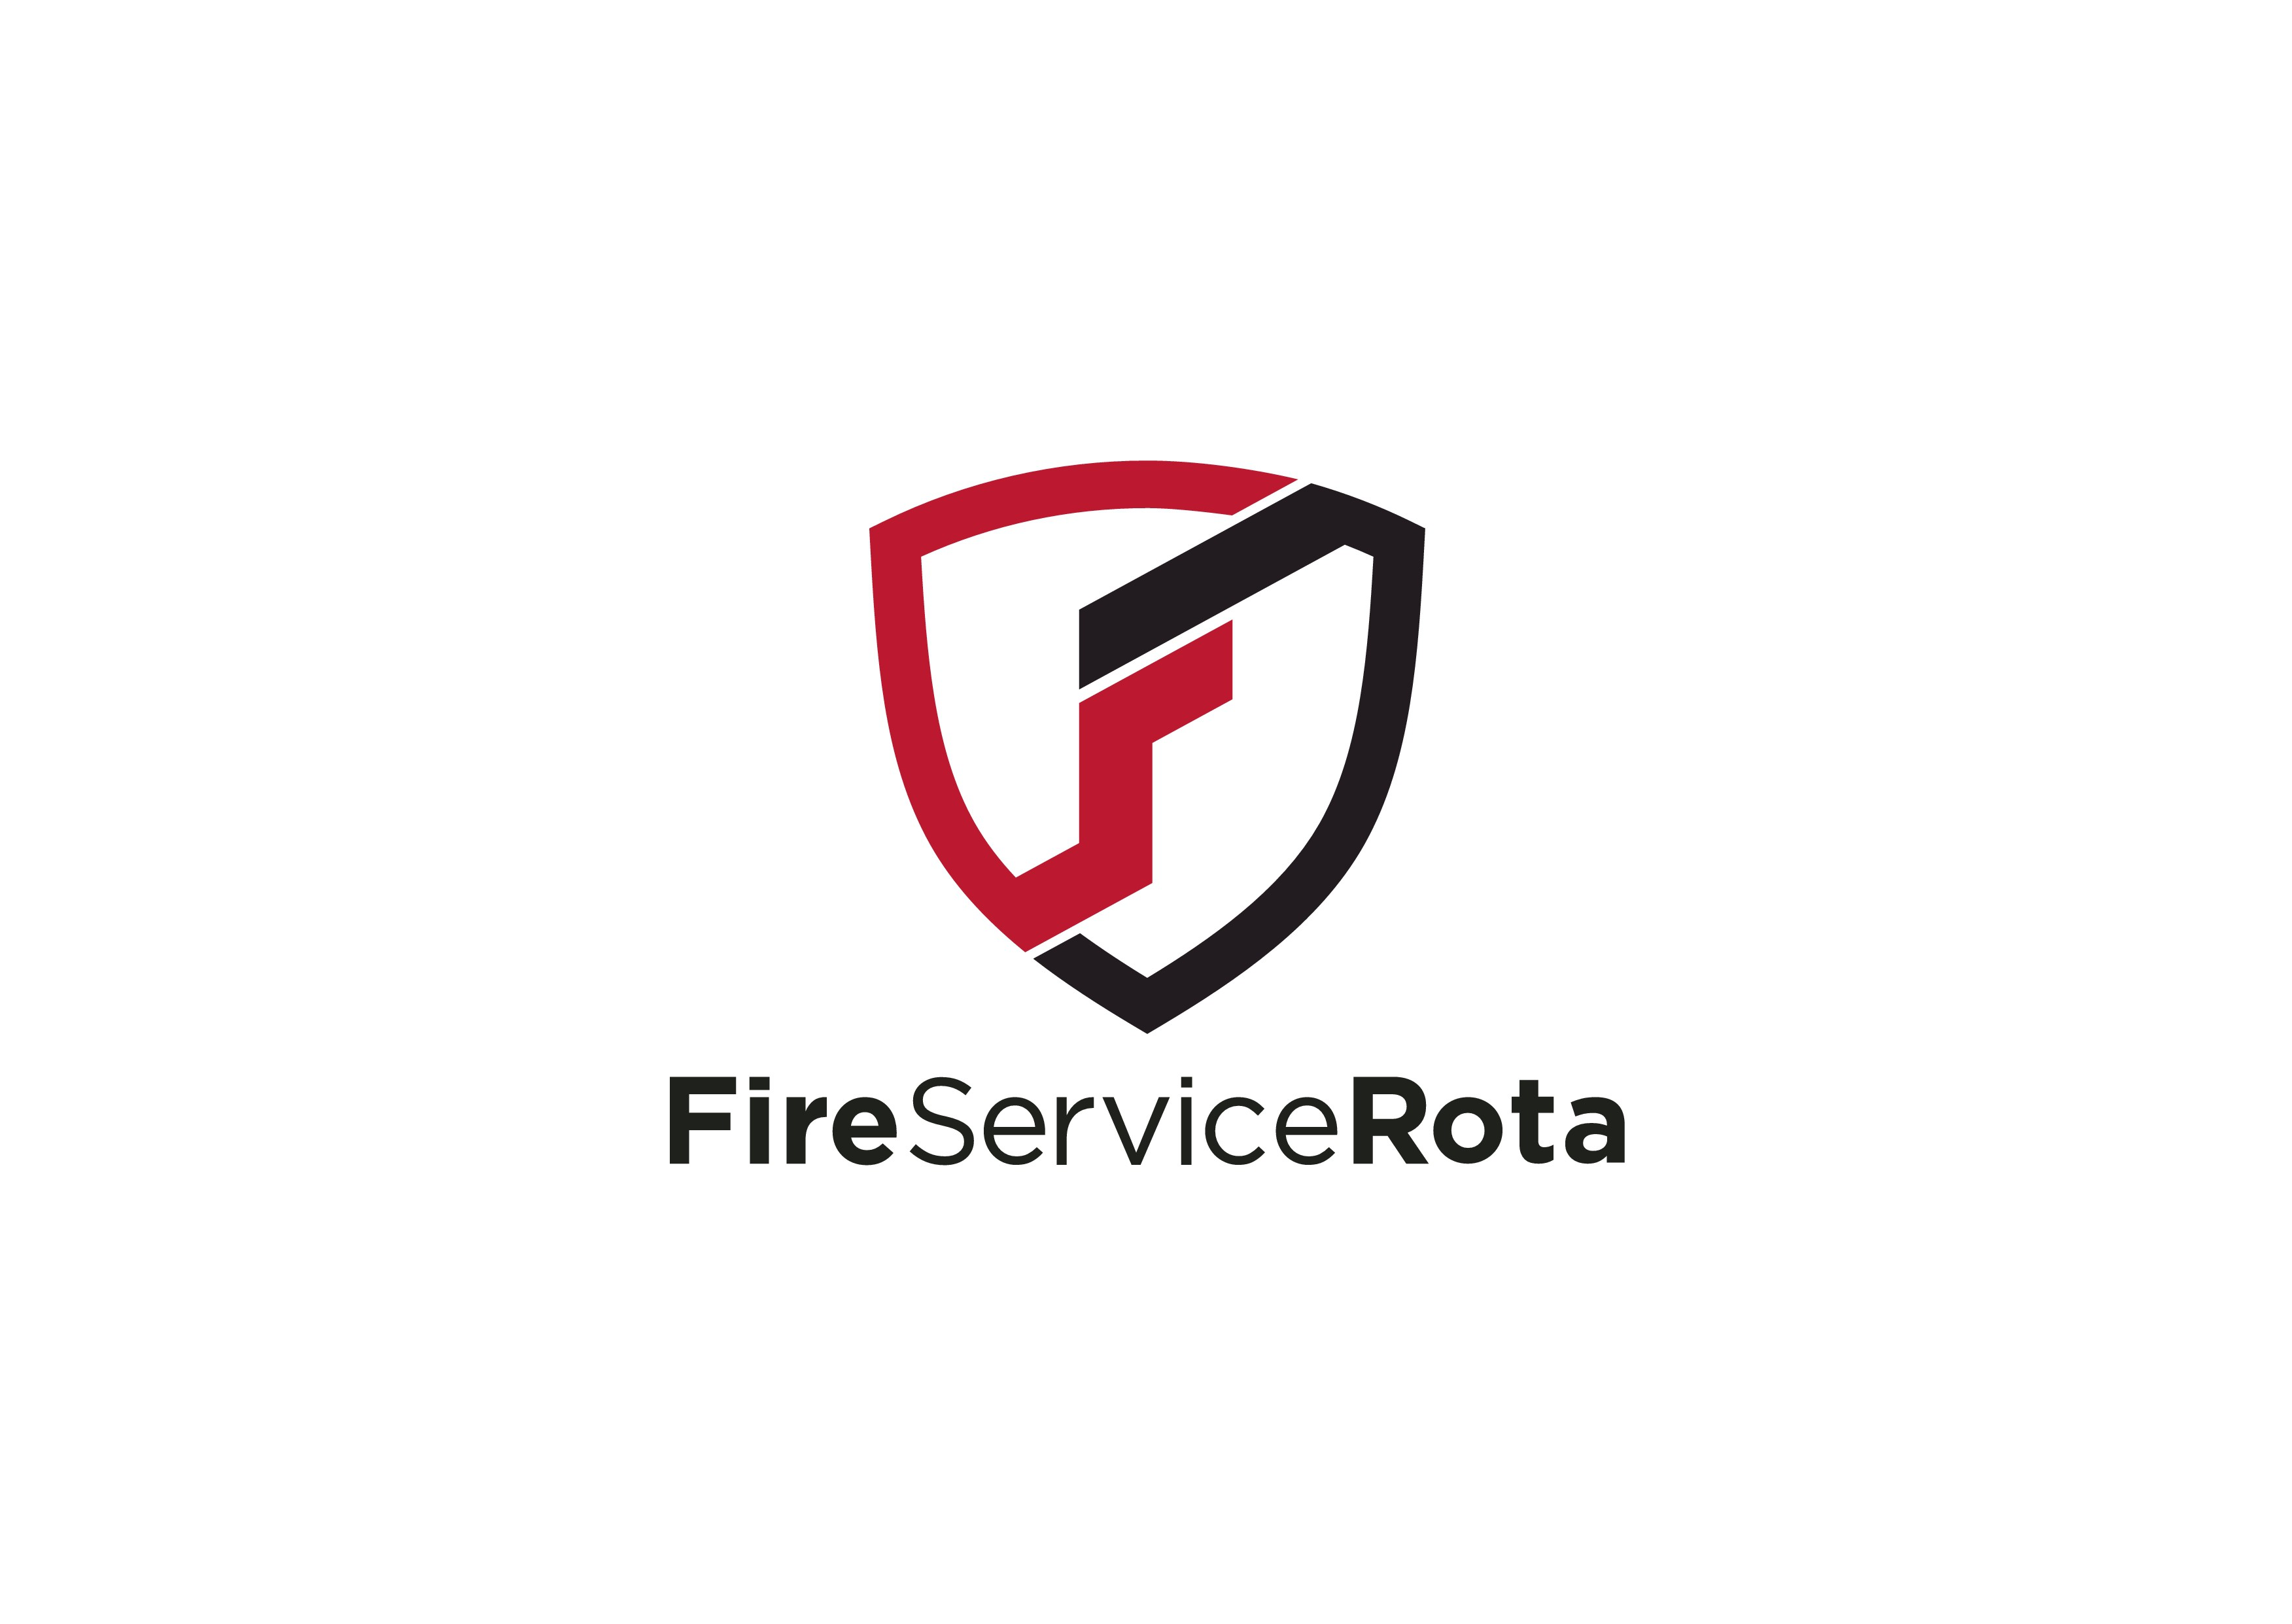 Will you help us reach fire & rescue services with our new FireServiceRota logo?